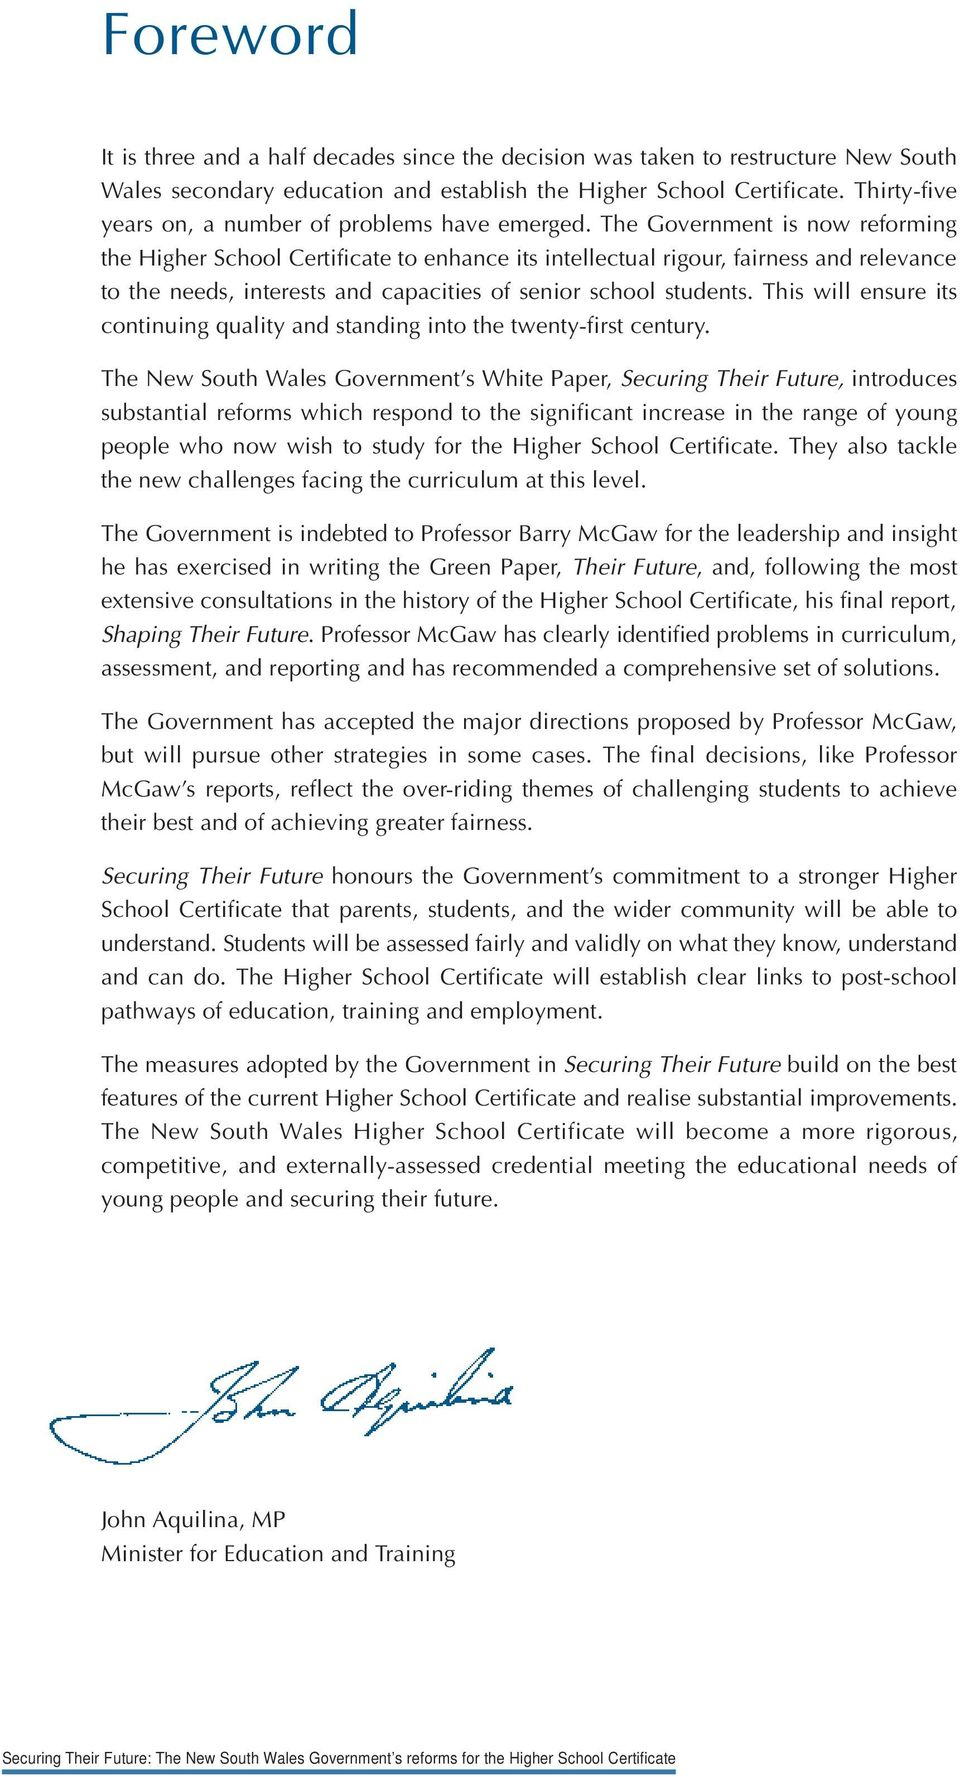 The Government is now reforming the Higher School Certificate to enhance its intellectual rigour, fairness and relevance to the needs, interests and capacities of senior school students.